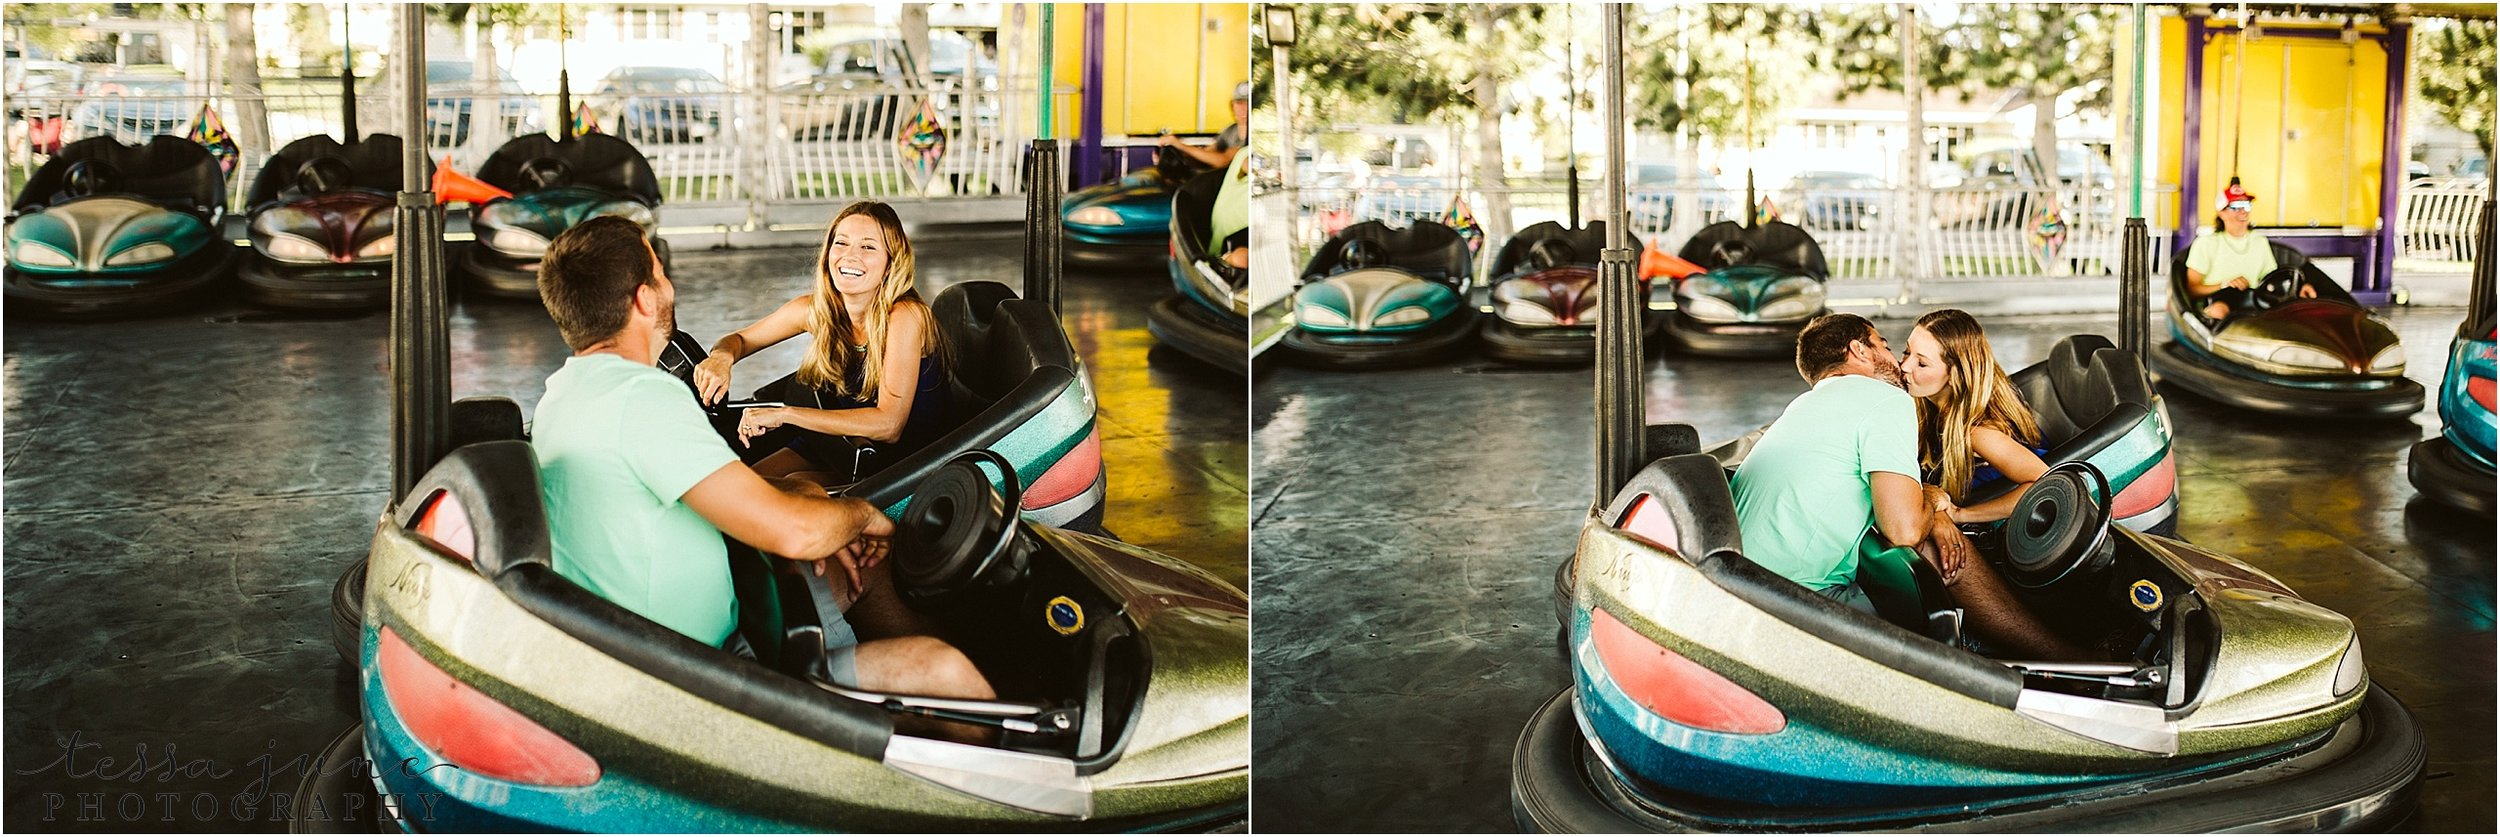 county-fair-engagement-session-in-minnesota-st-cloud-photographer-bumper-cars